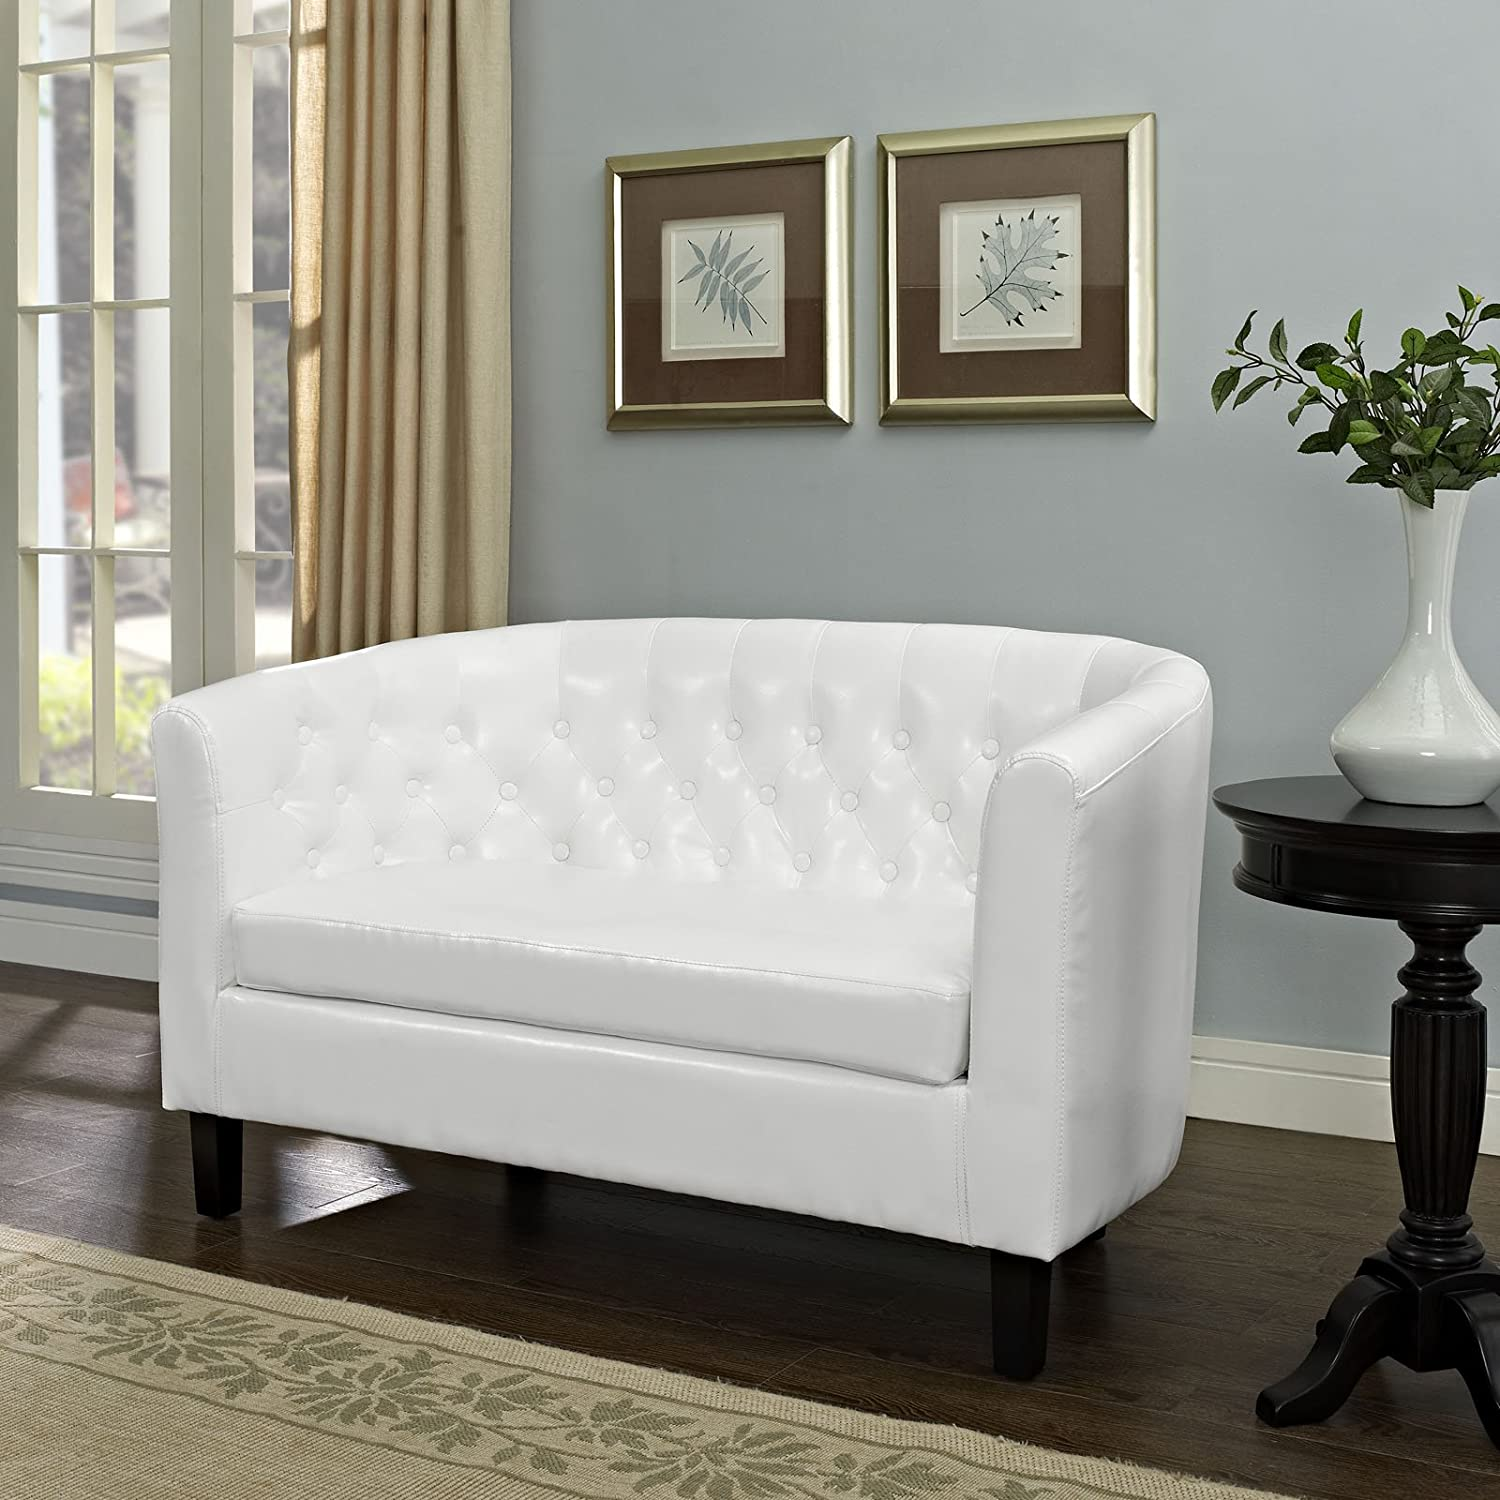 oversized spaces center cozy arm size loveseats sofa of full with buy tufted leather console cool chaise furniture table chair recliner couch reclining and sectional small wide patio cushions for white loveseat